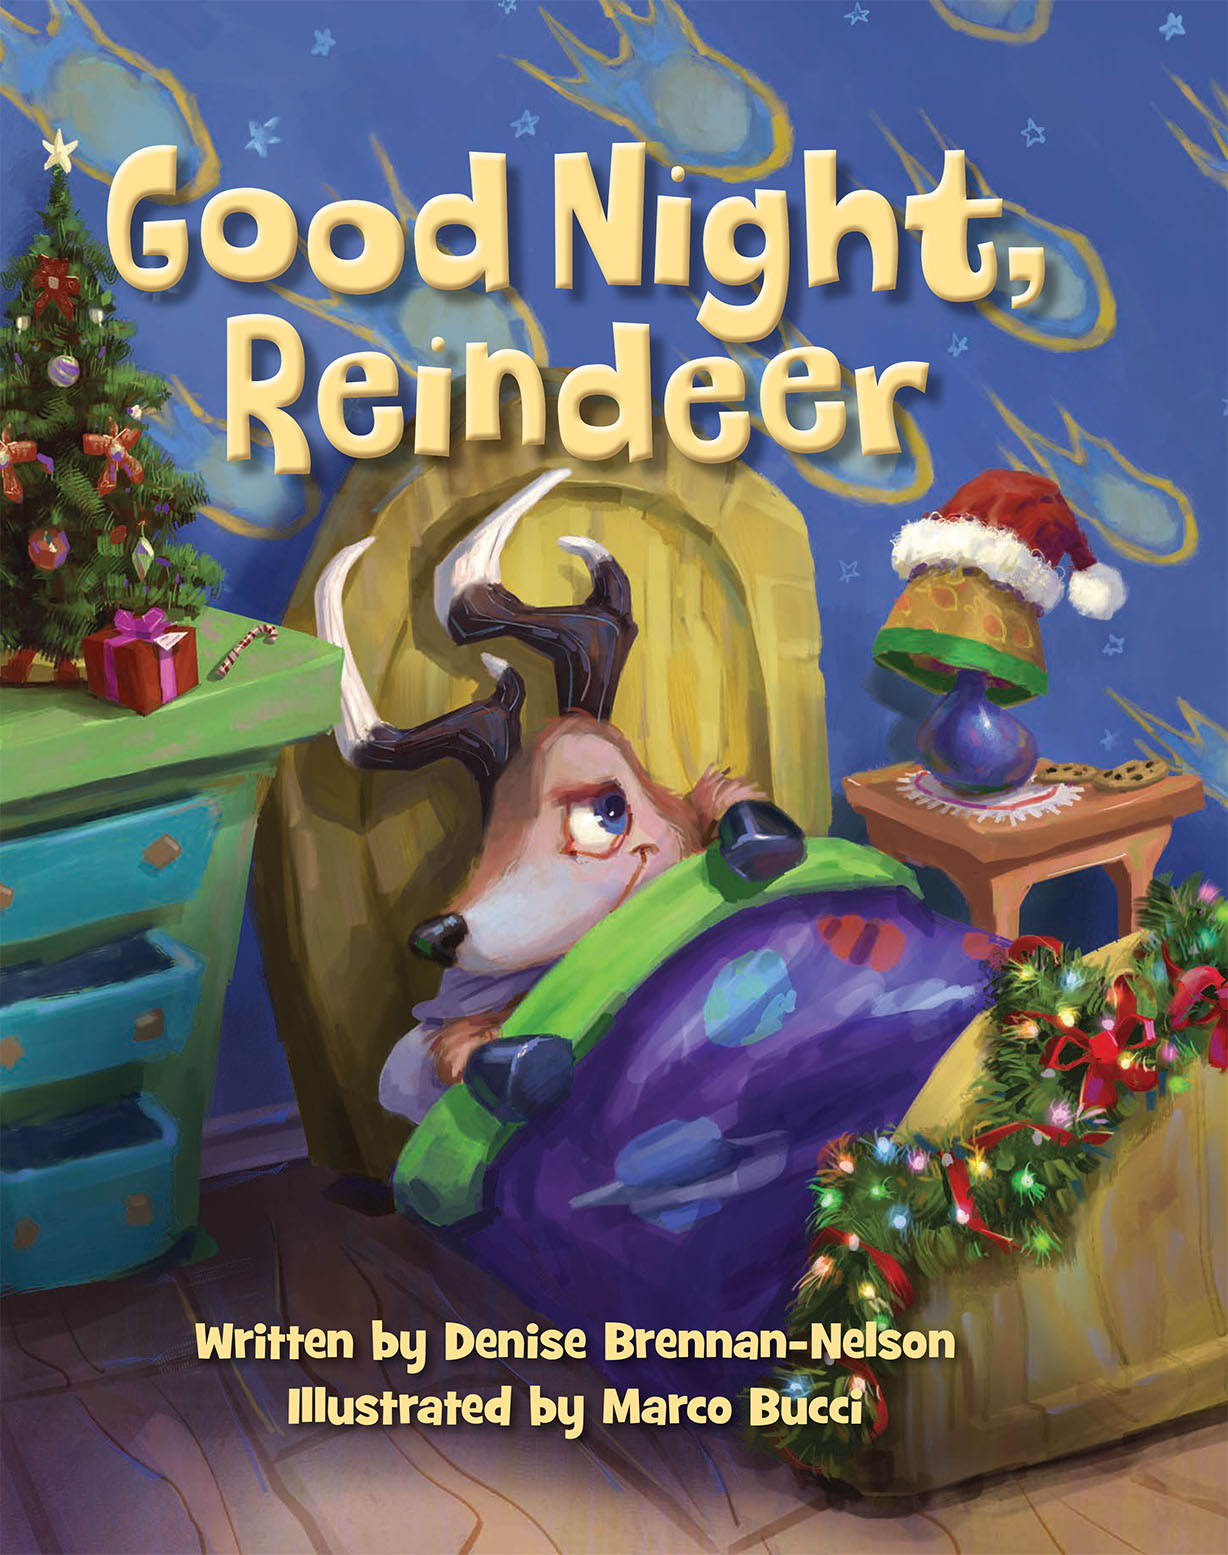 GoodNightReindeer